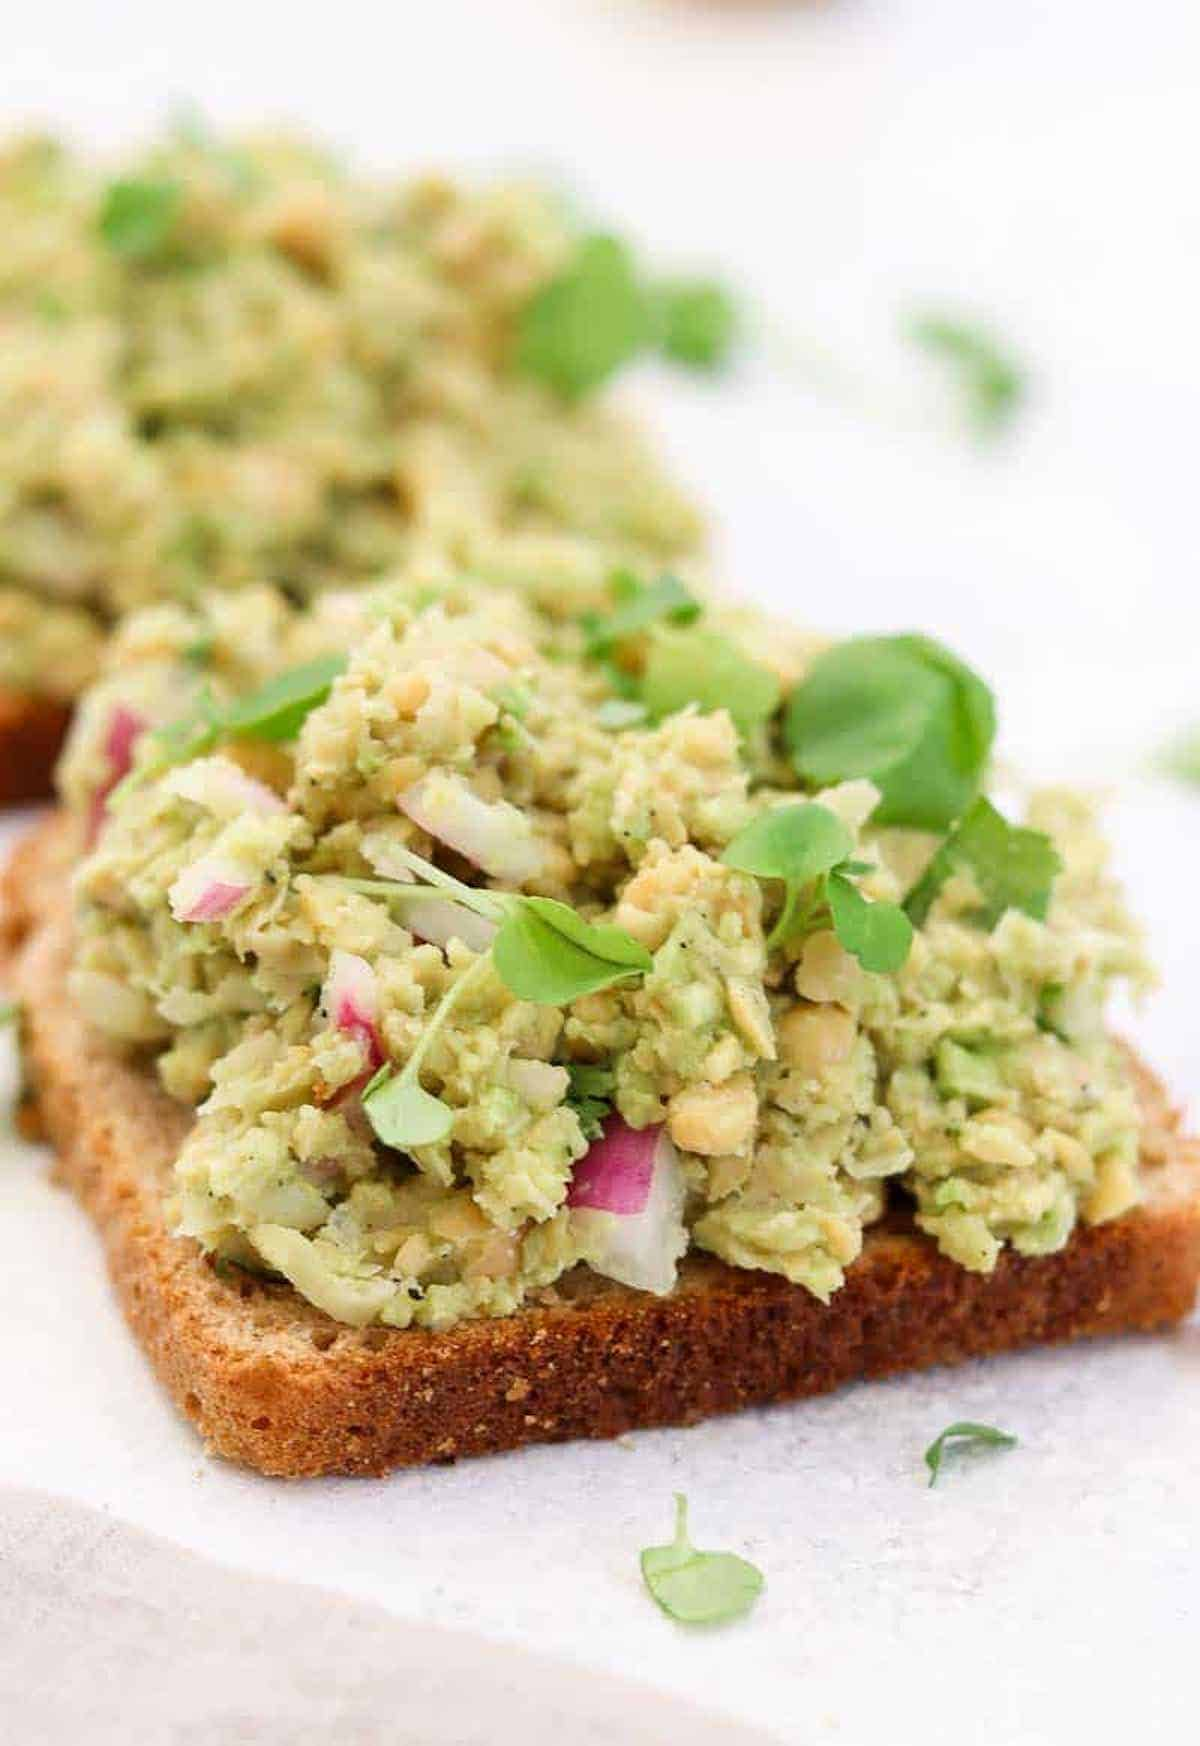 Chickpea salad on a piece of toasted bread.